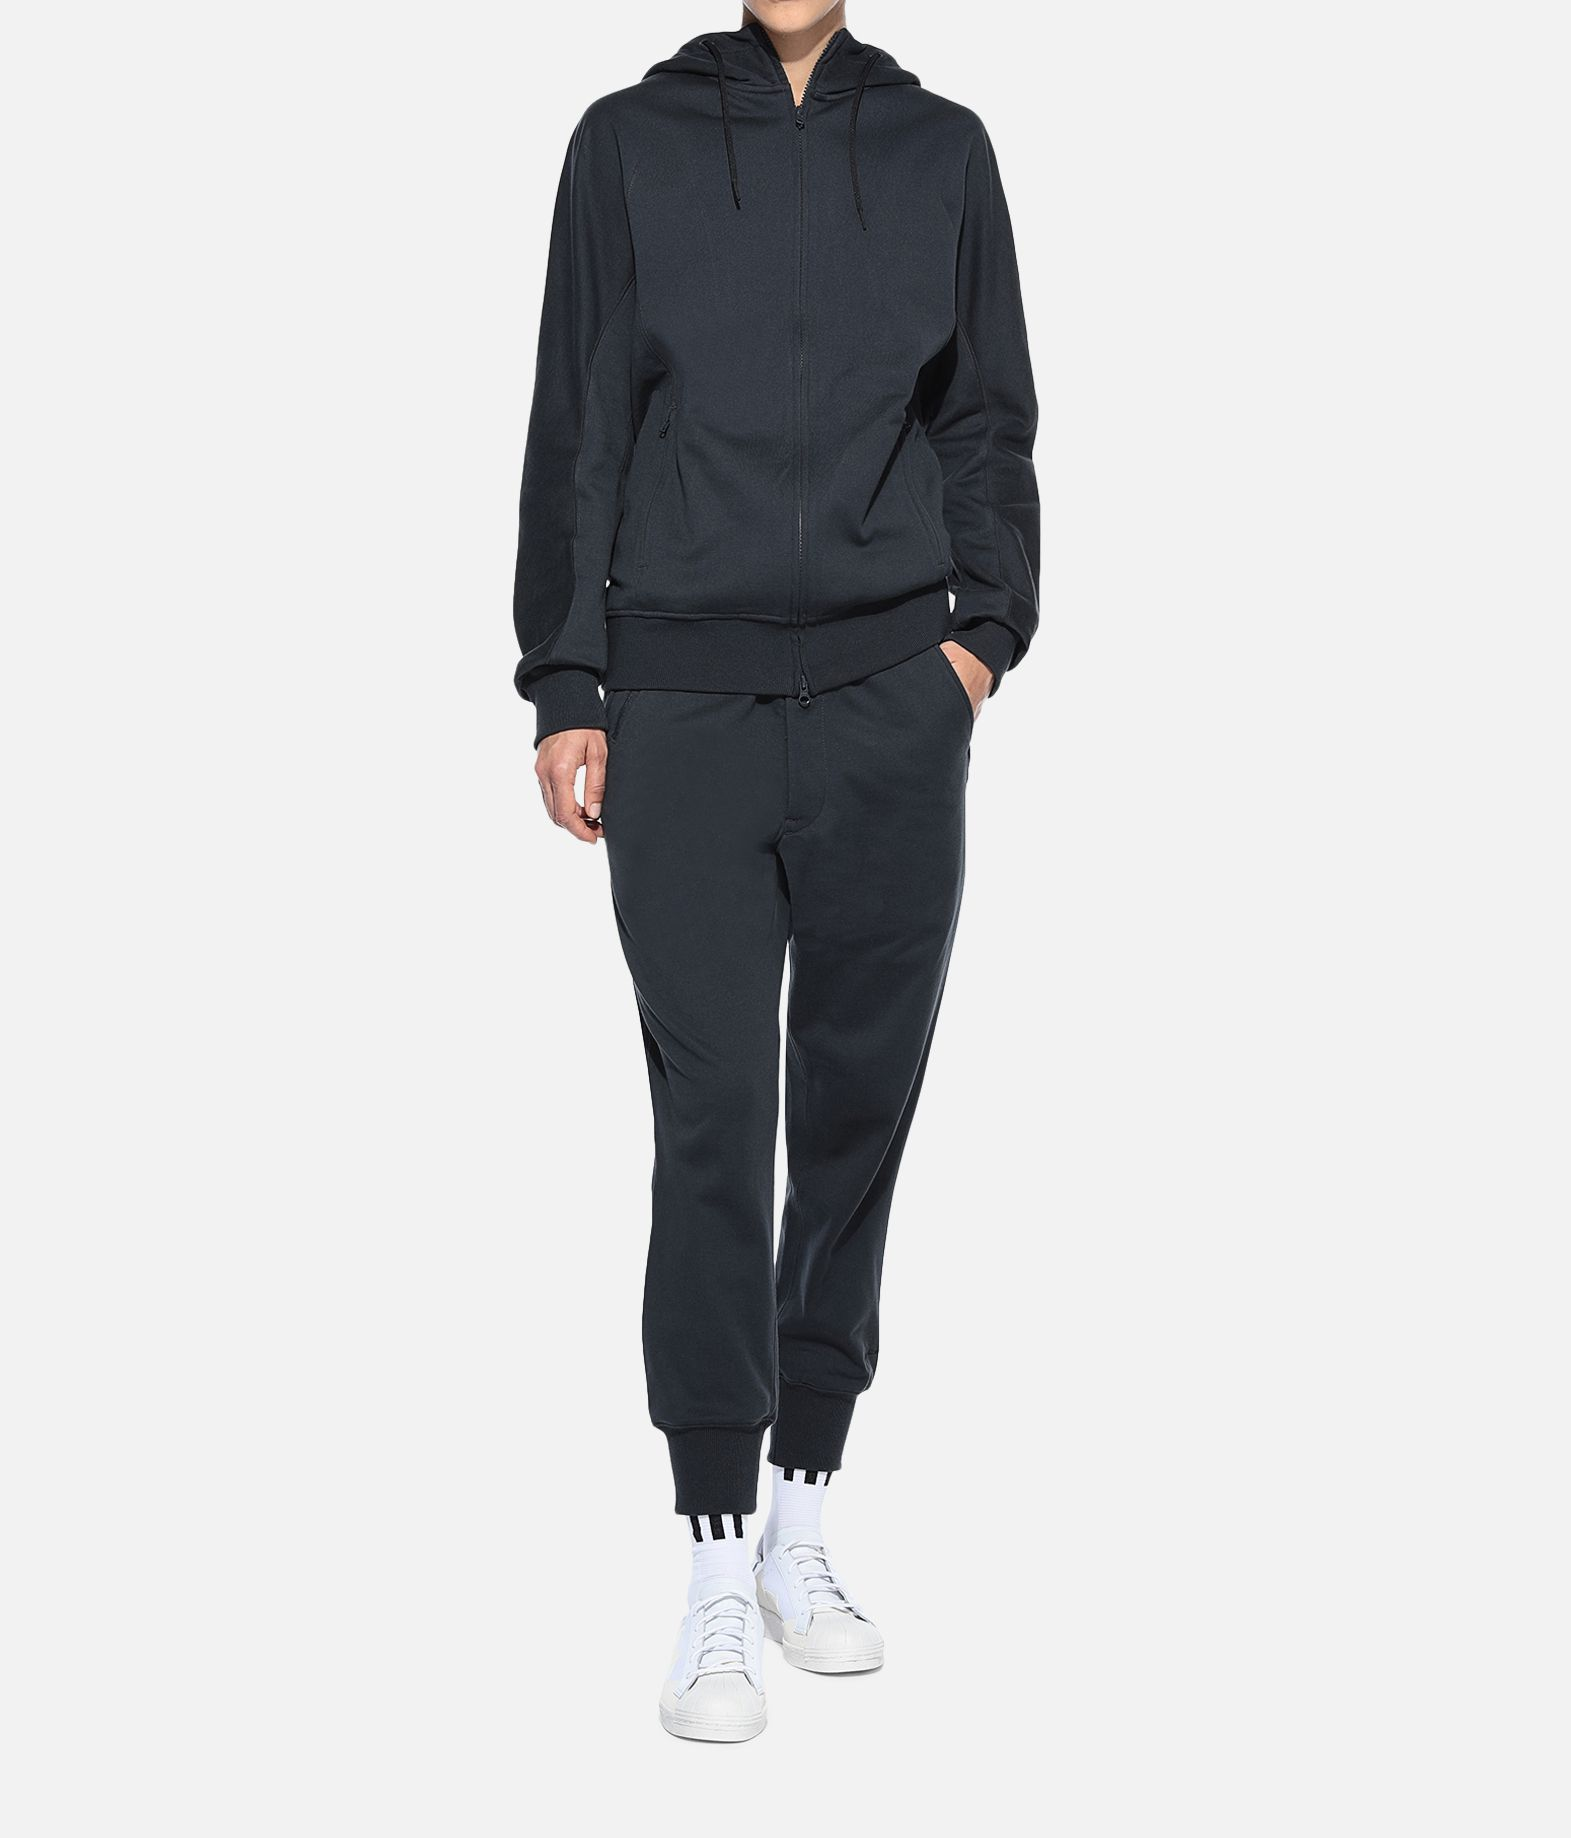 Y-3 Y-3 Classic Cuffed Pants Sweatpants Woman a